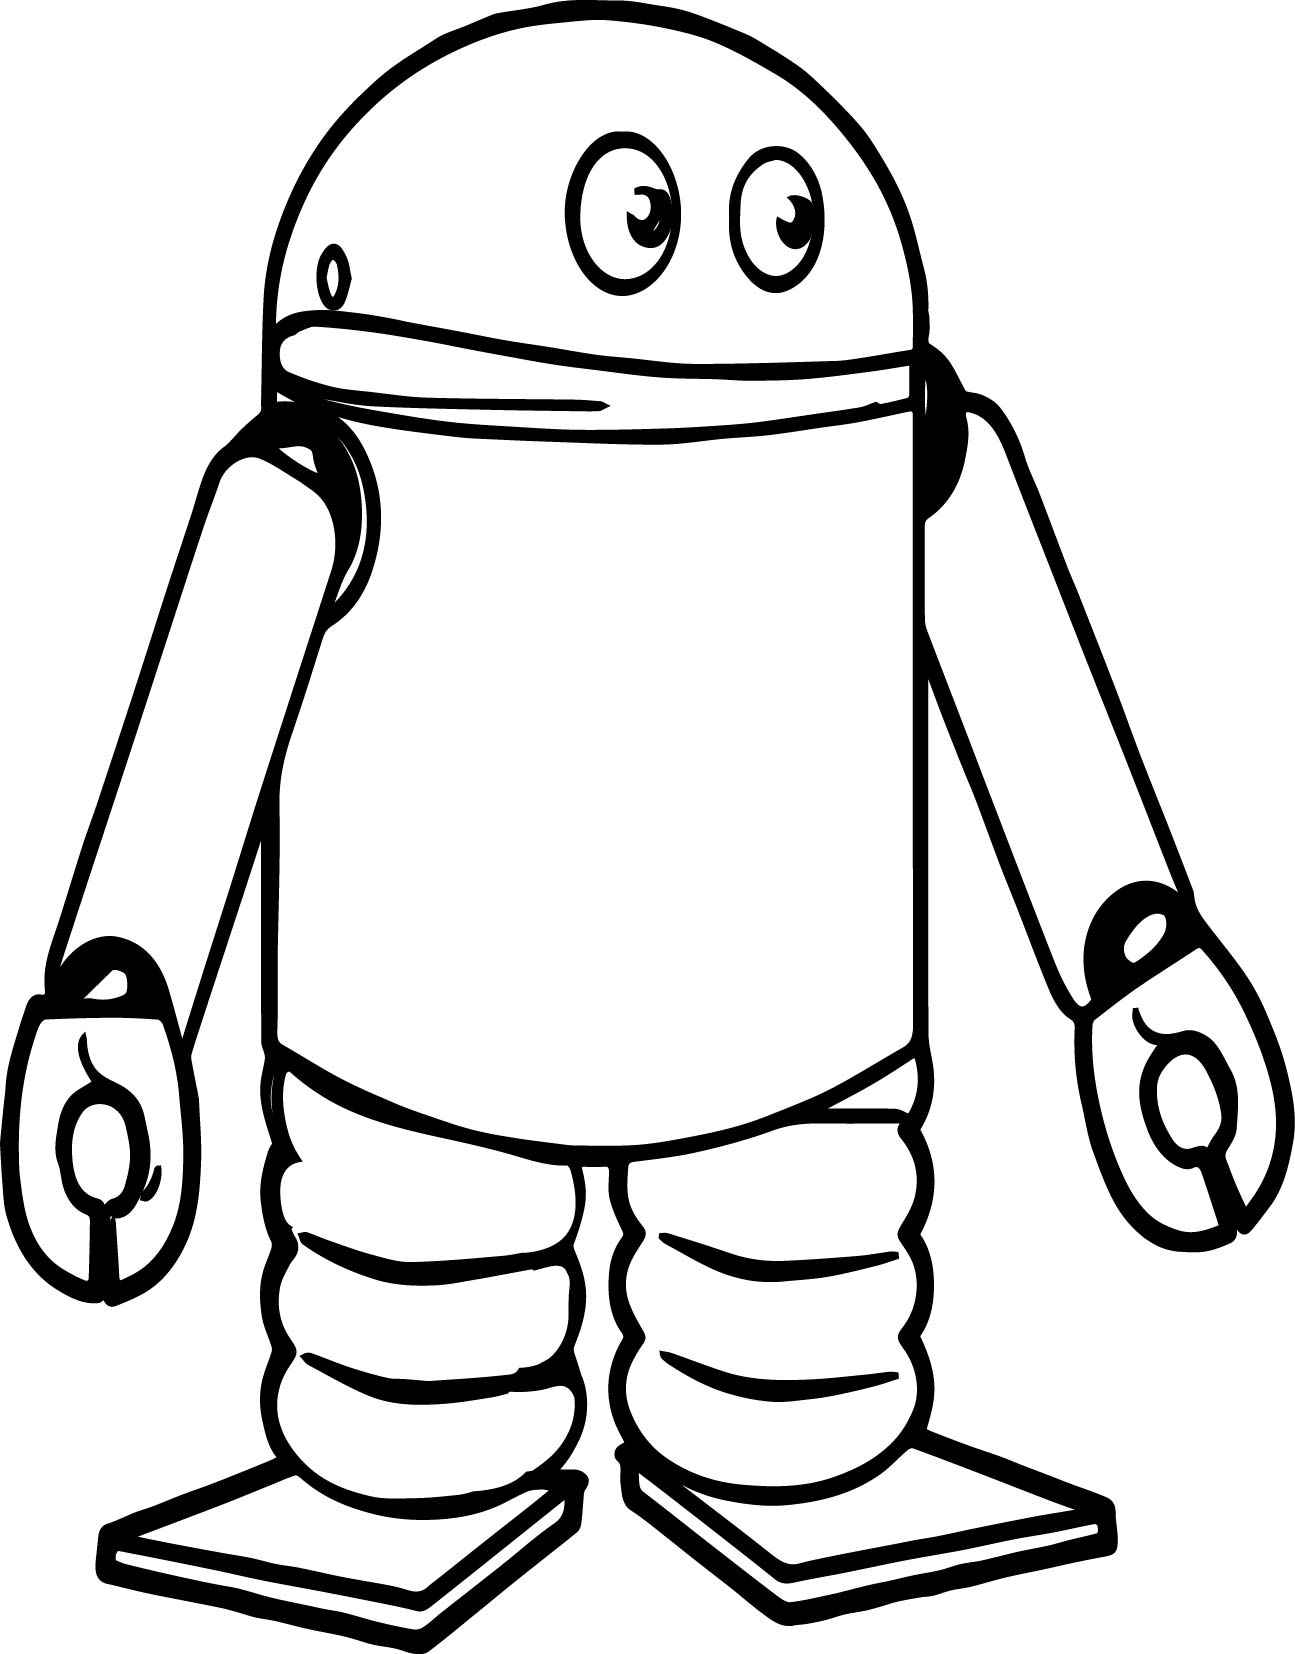 Spring Robot Coloring Page